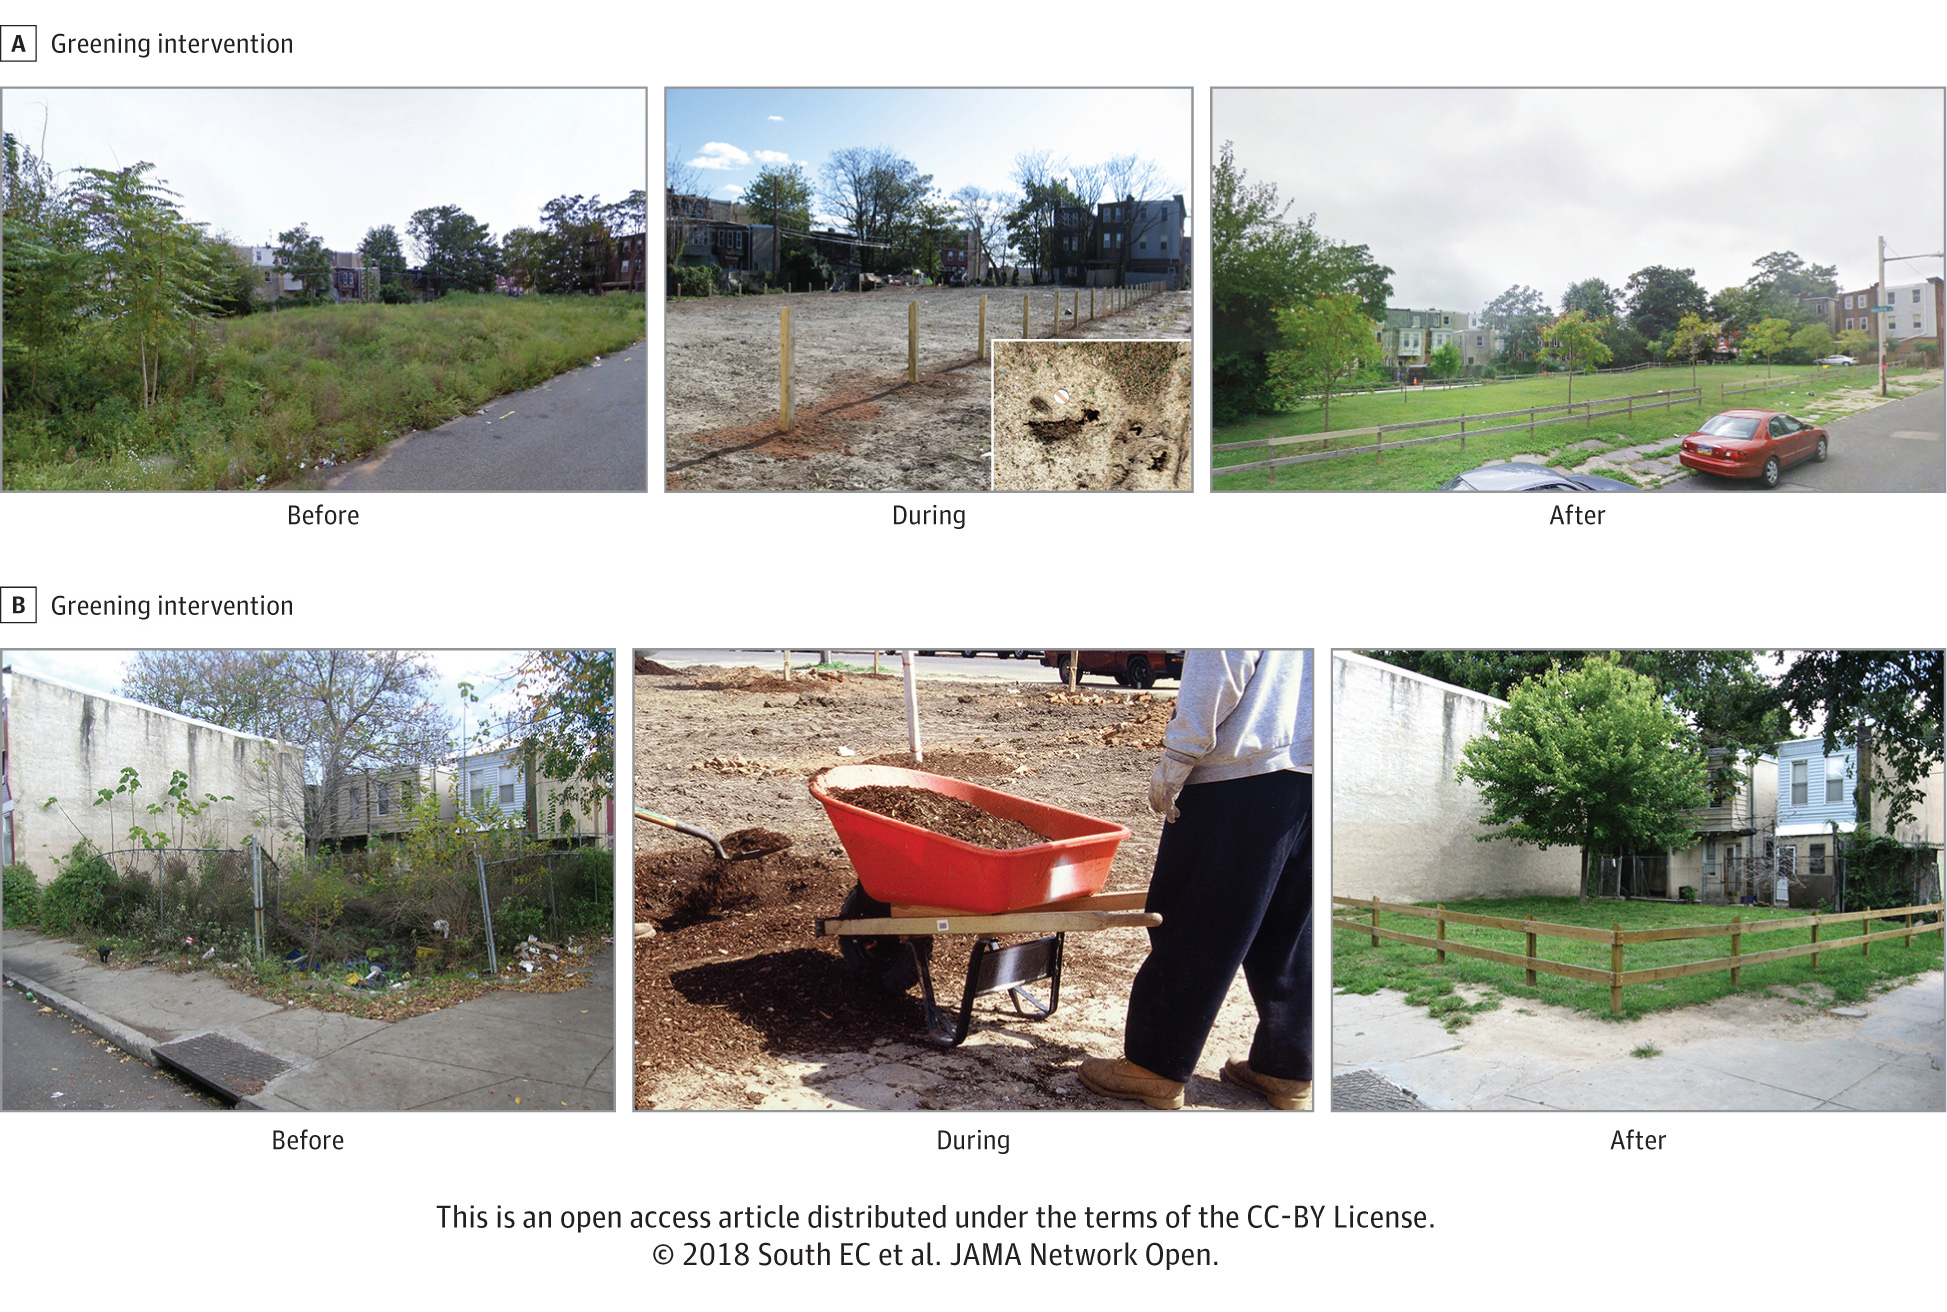 turning vacant lots into green spaces can improve mental health Turning Vacant Lots Into Green Spaces Can Improve Mental Health 07 20 jno greening